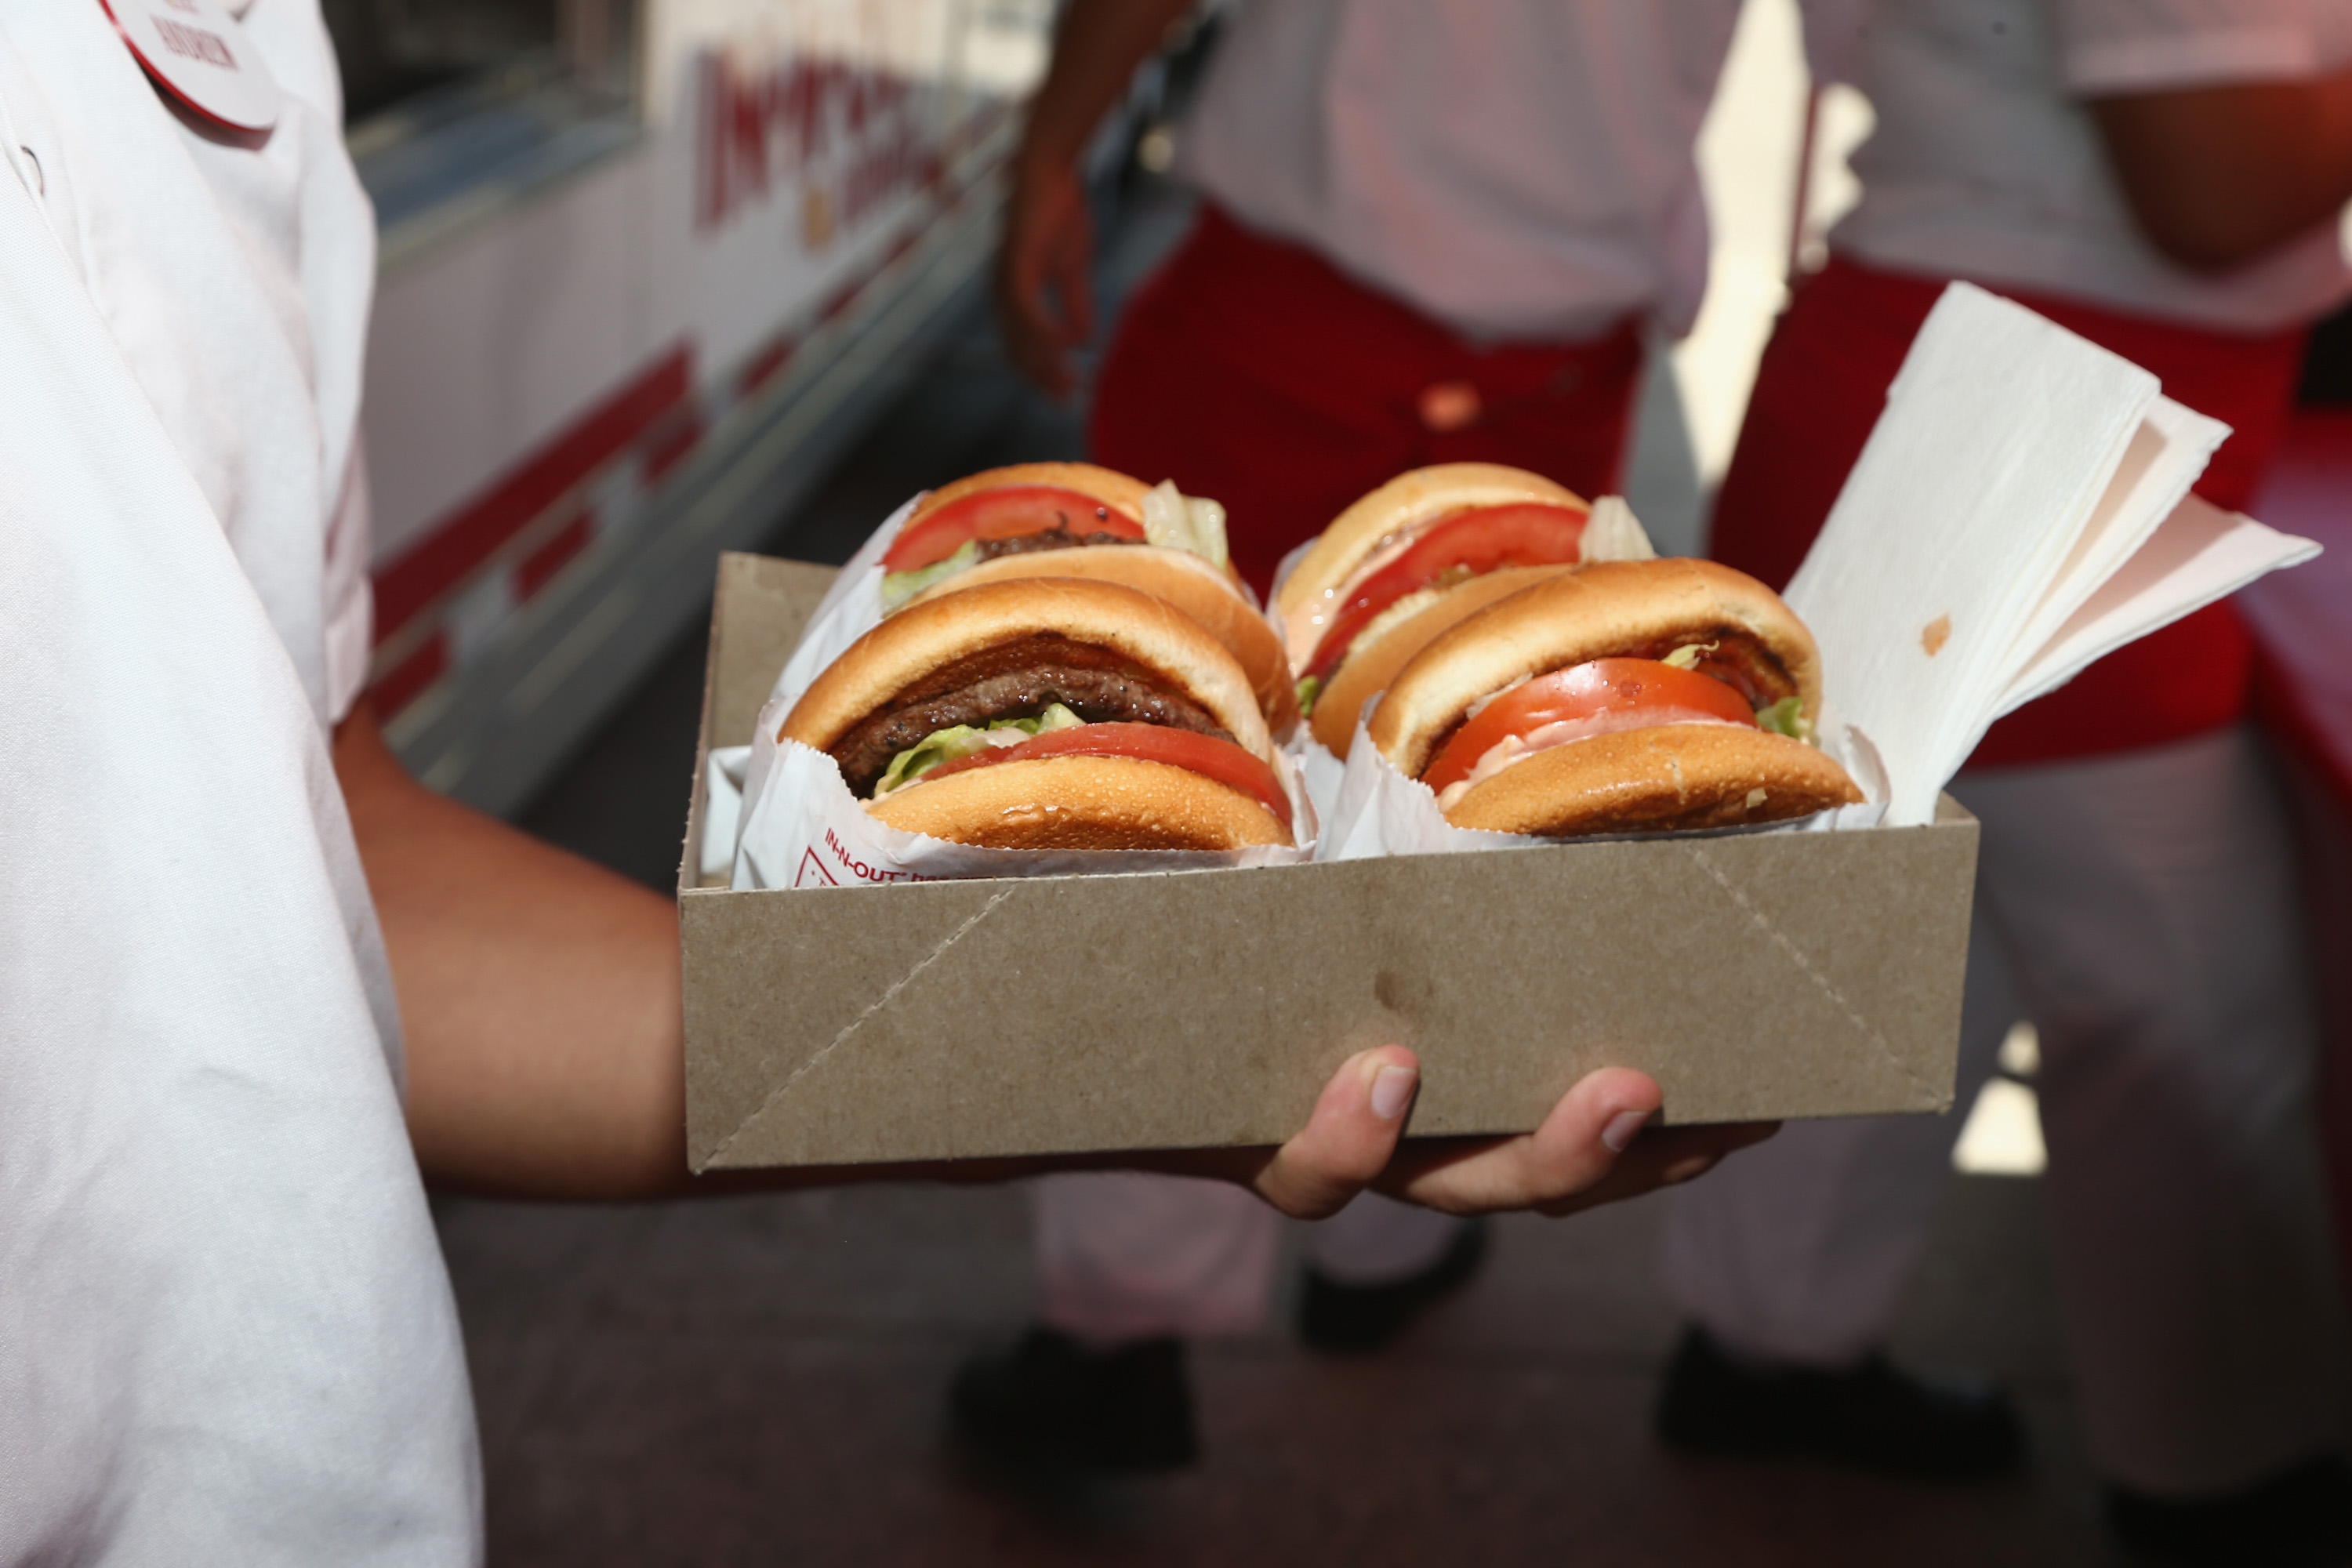 In-N-Out Burger at Safe Kids Day 2017 at Smashbox Studios on April 23, 2017 in Culver City, California. (Photo by Tommaso Boddi/Getty Images for Safe Kids Worldwide )